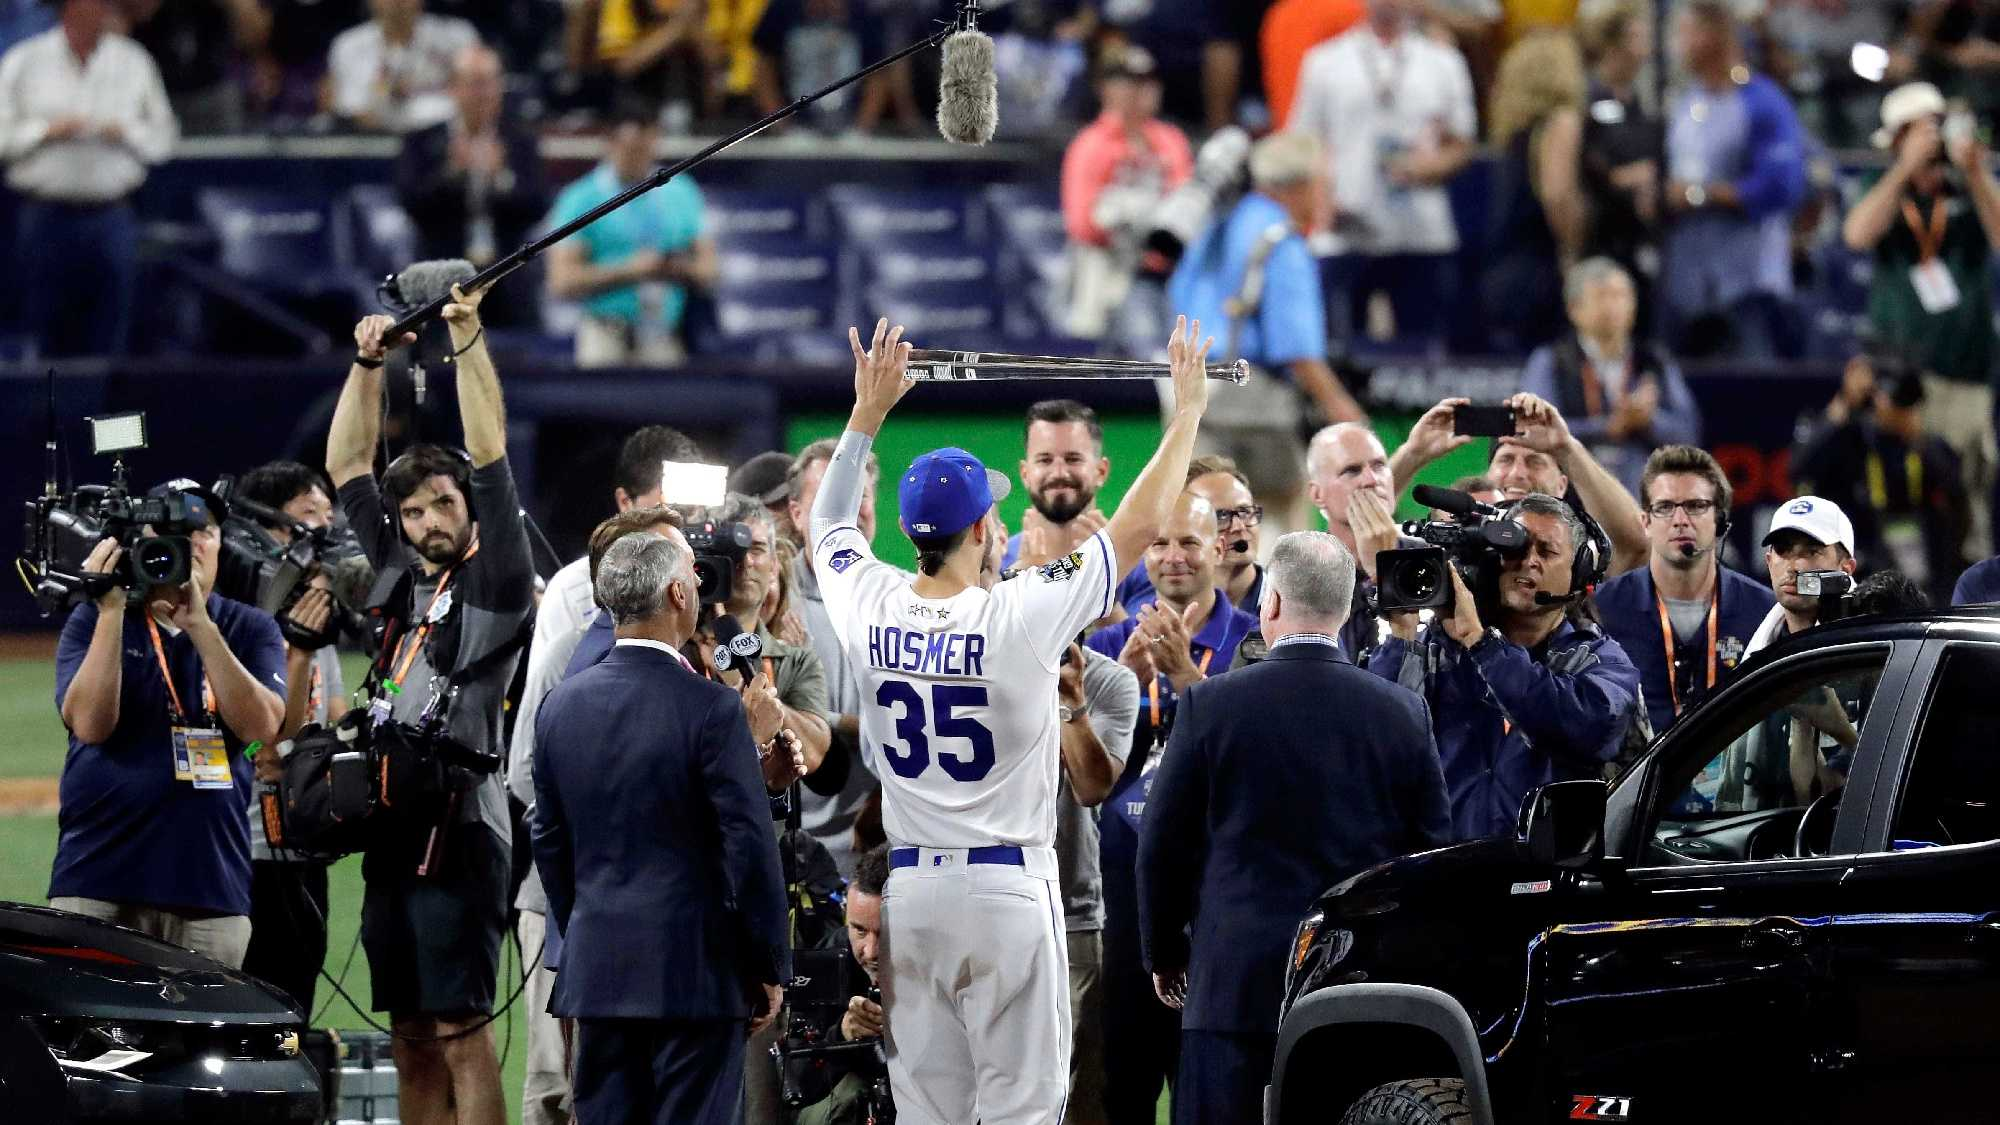 American League's Eric Hosmer, of the Kansas City Royals, holds the MVP trophy after the MLB baseball All-Star Game, Tuesday, July 12, 2016, in San Diego. The American League won 4-2. (AP Photo/Jae C. Hong)